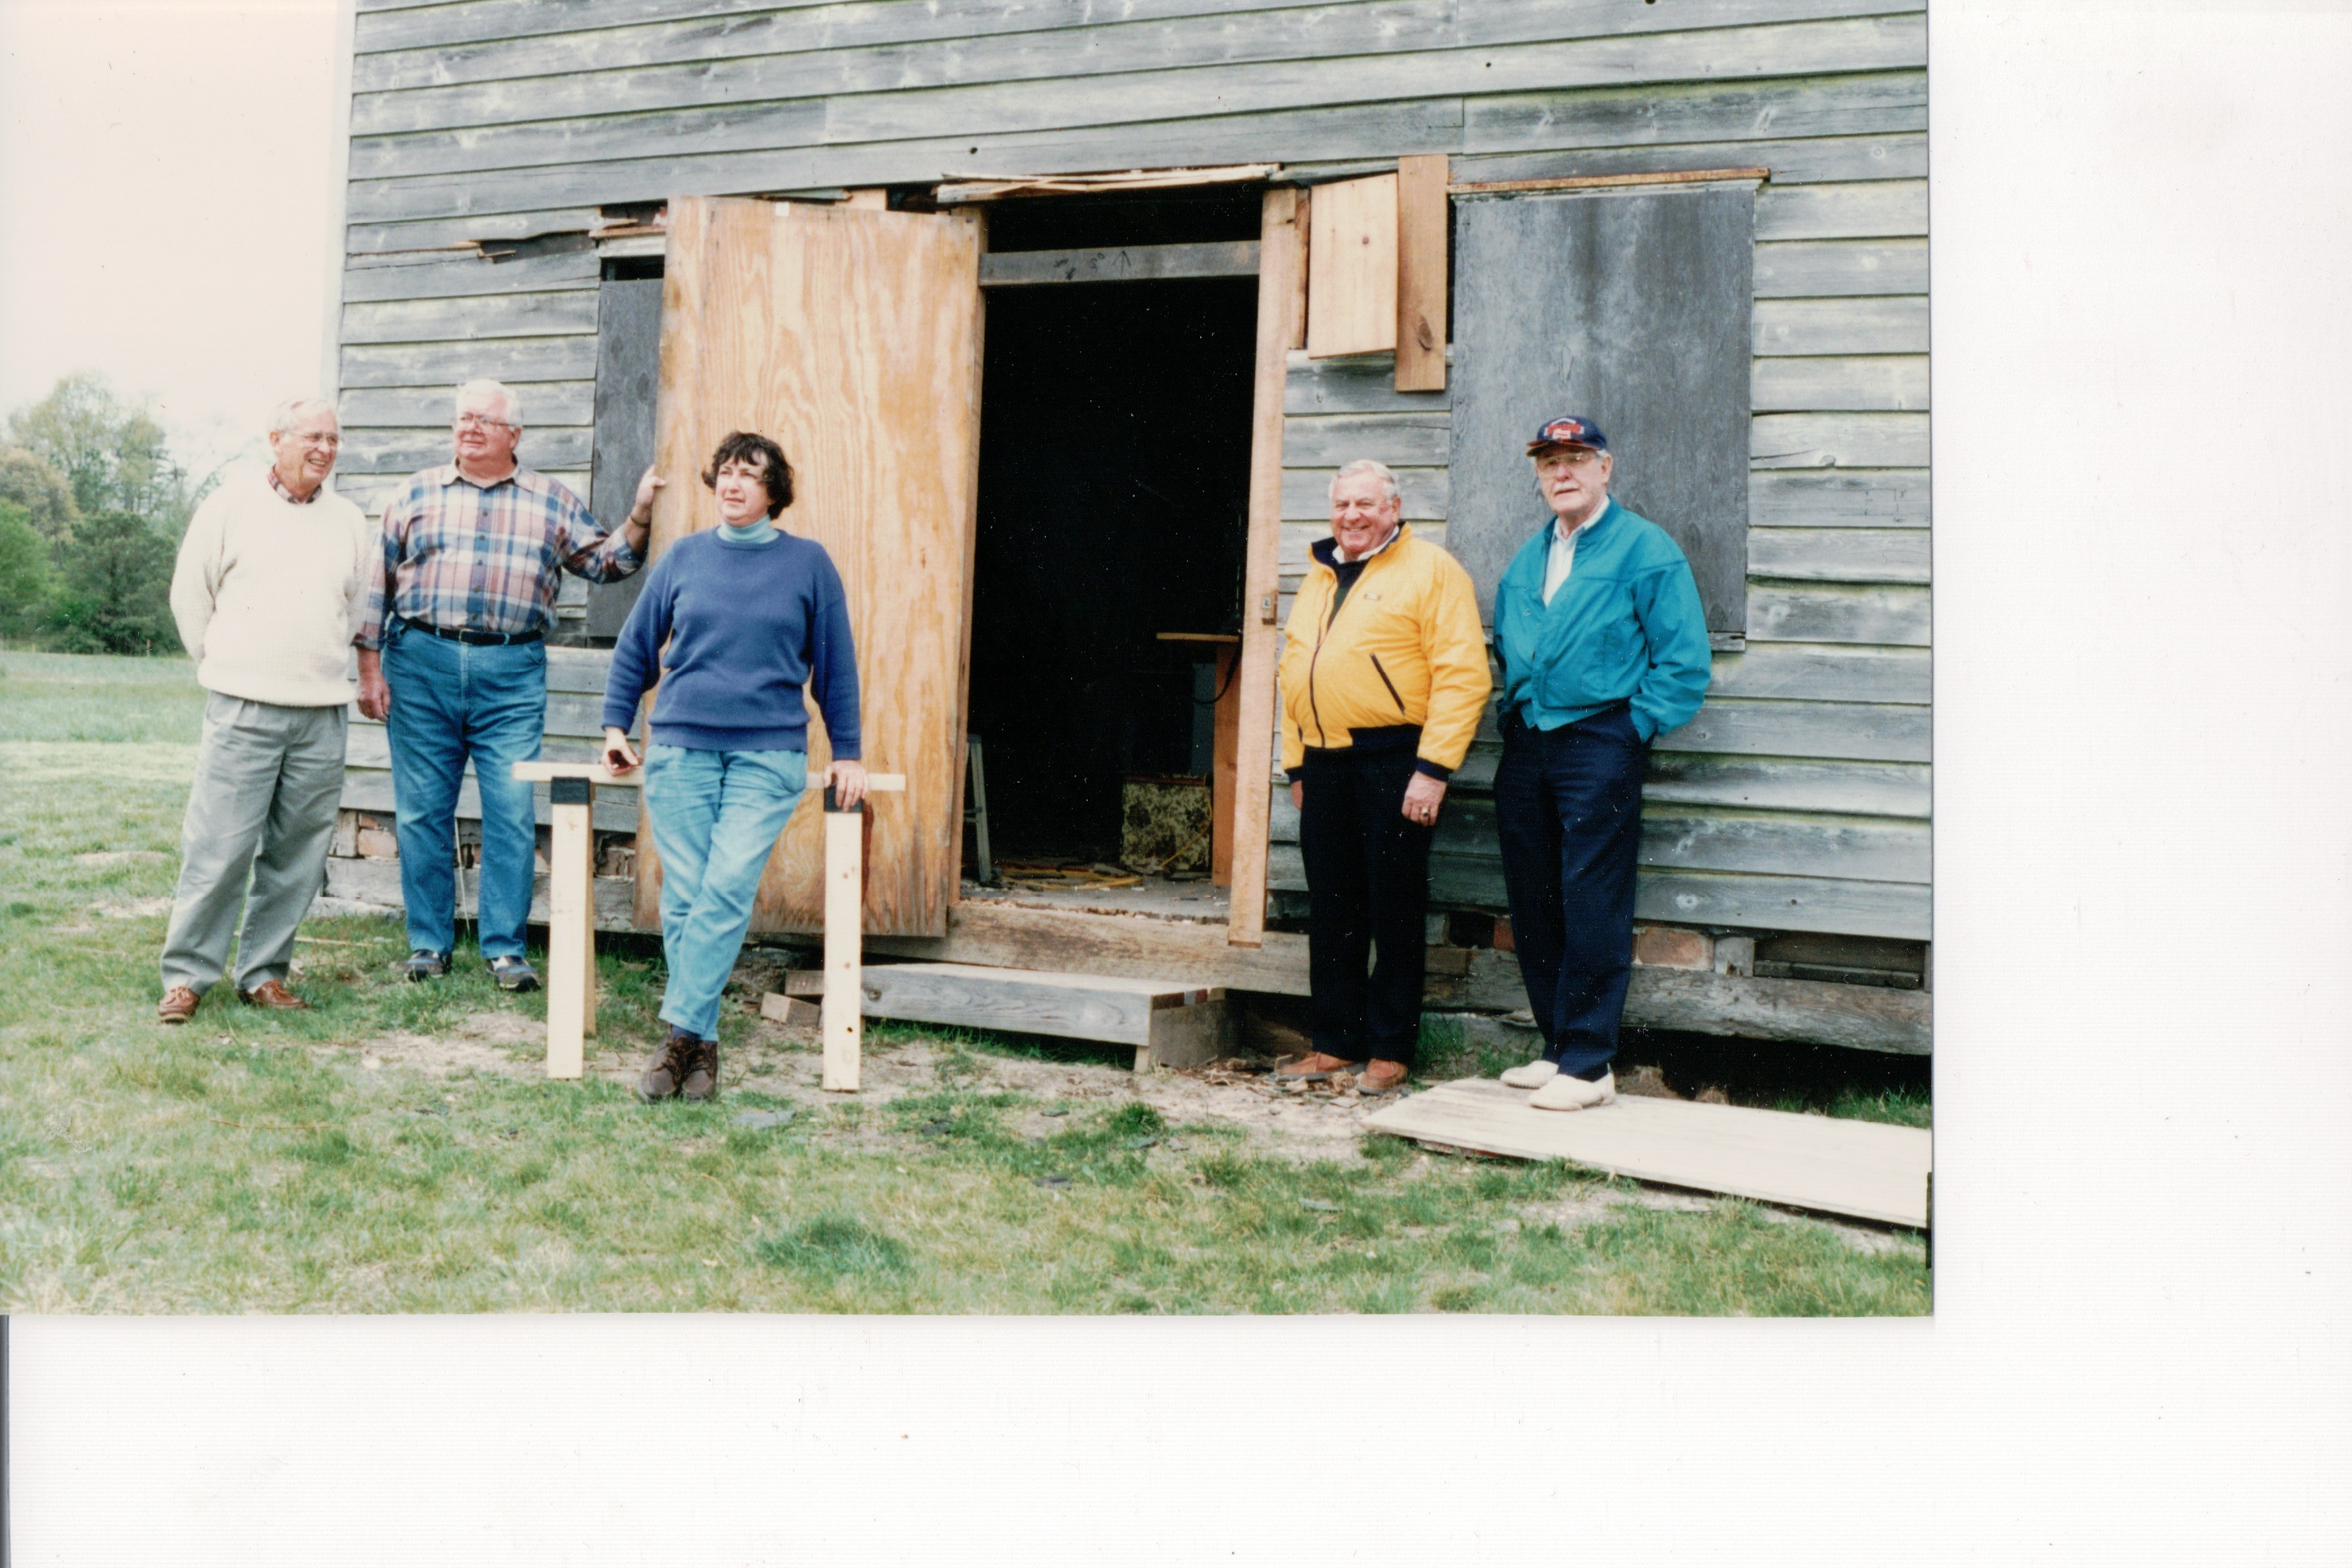 The Gandy House in its early stages of restoration. @1980 The members of the restoration crew are from left to right:James Siegrist, Paul Kuhnle, Sonia Forry, and Reynolds Schmidt.